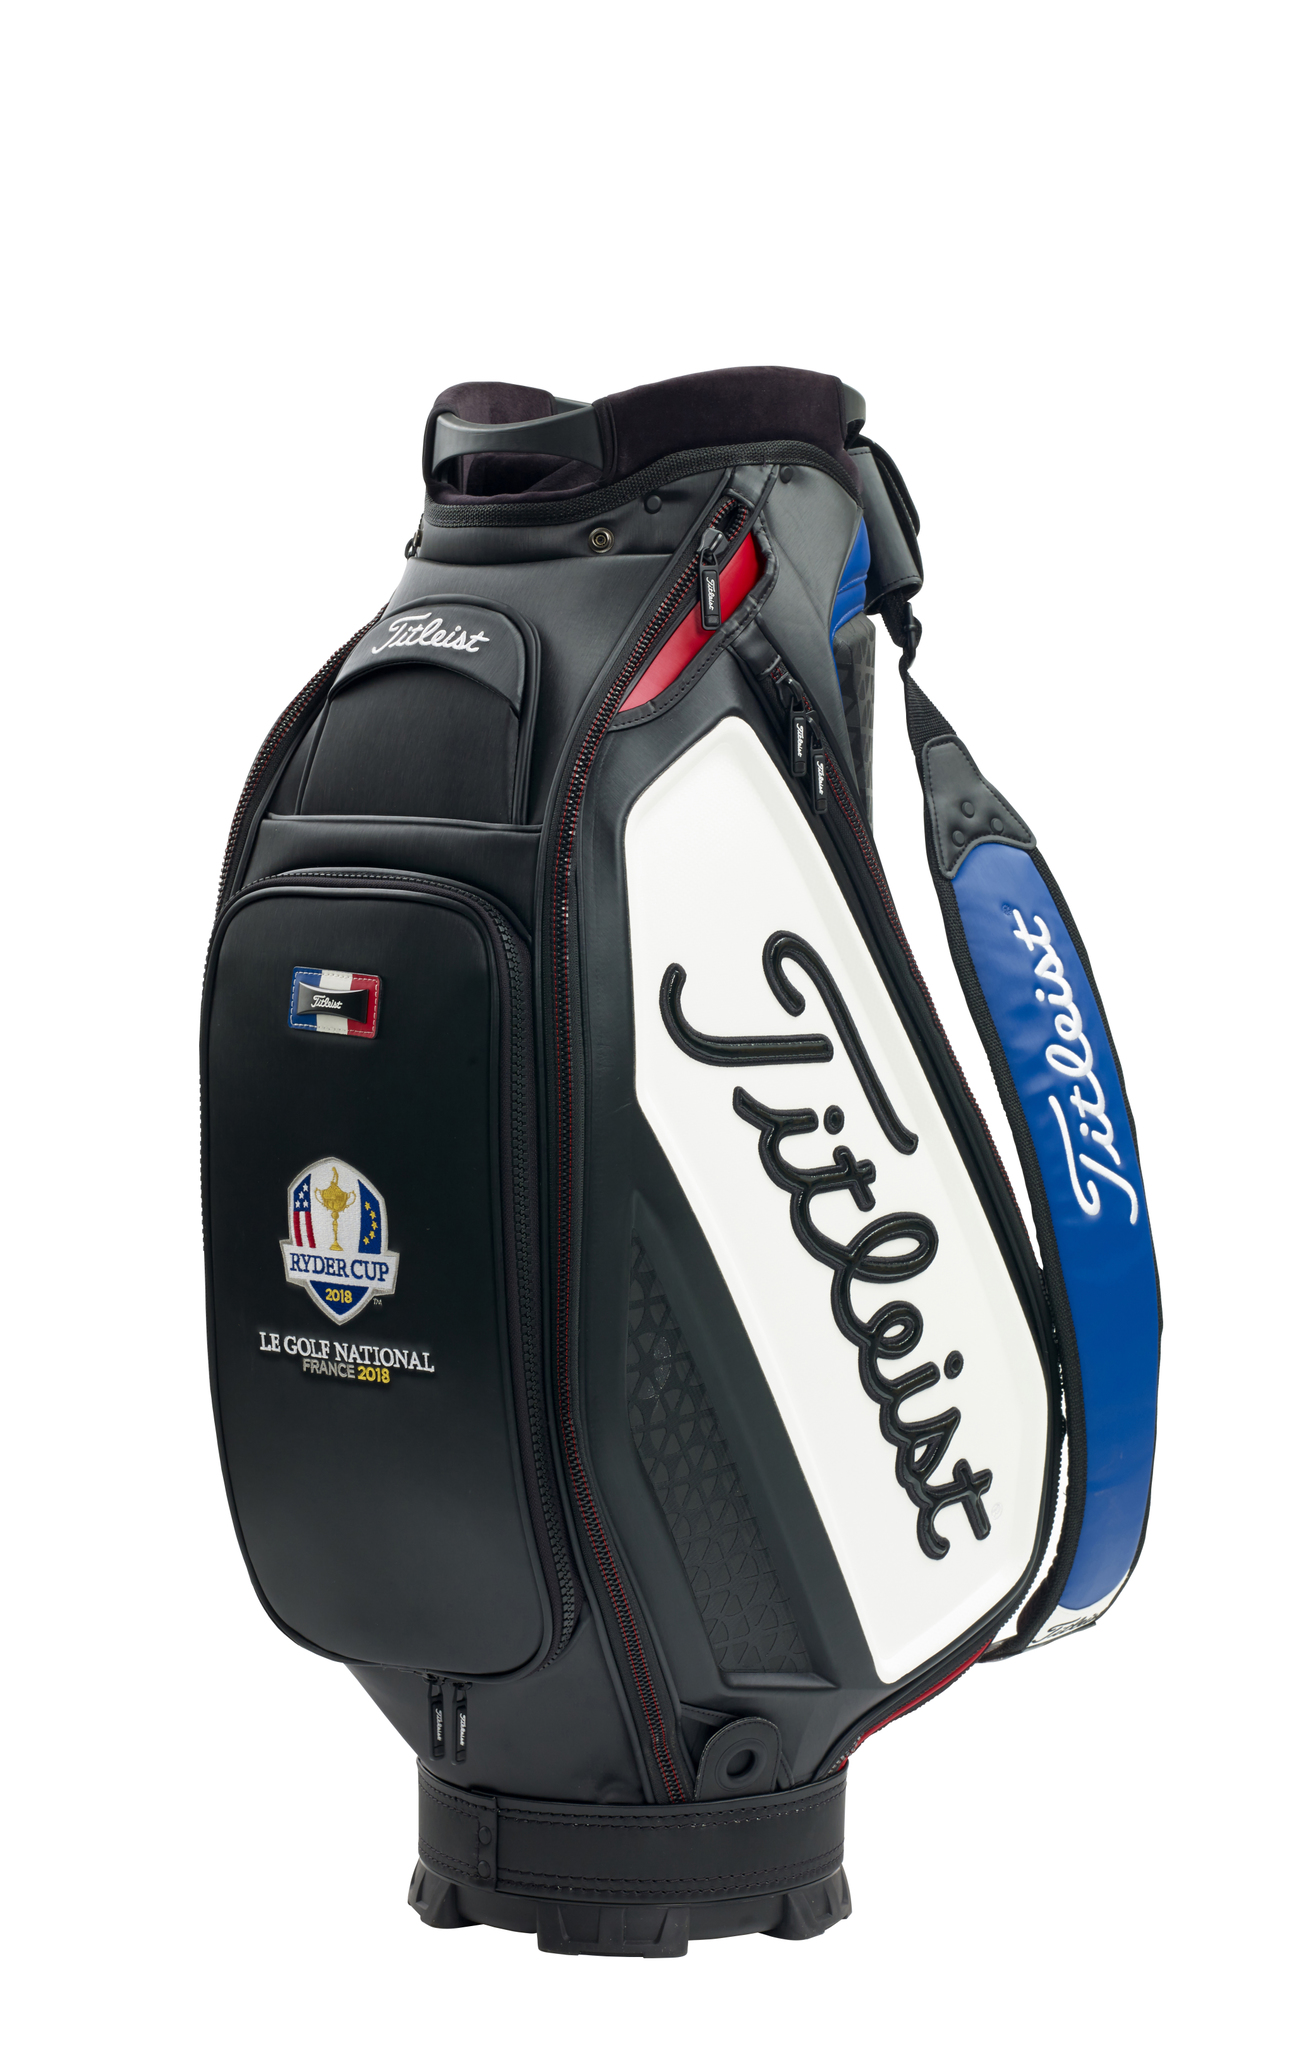 Titleist's limited edition Ryder Cup gear range